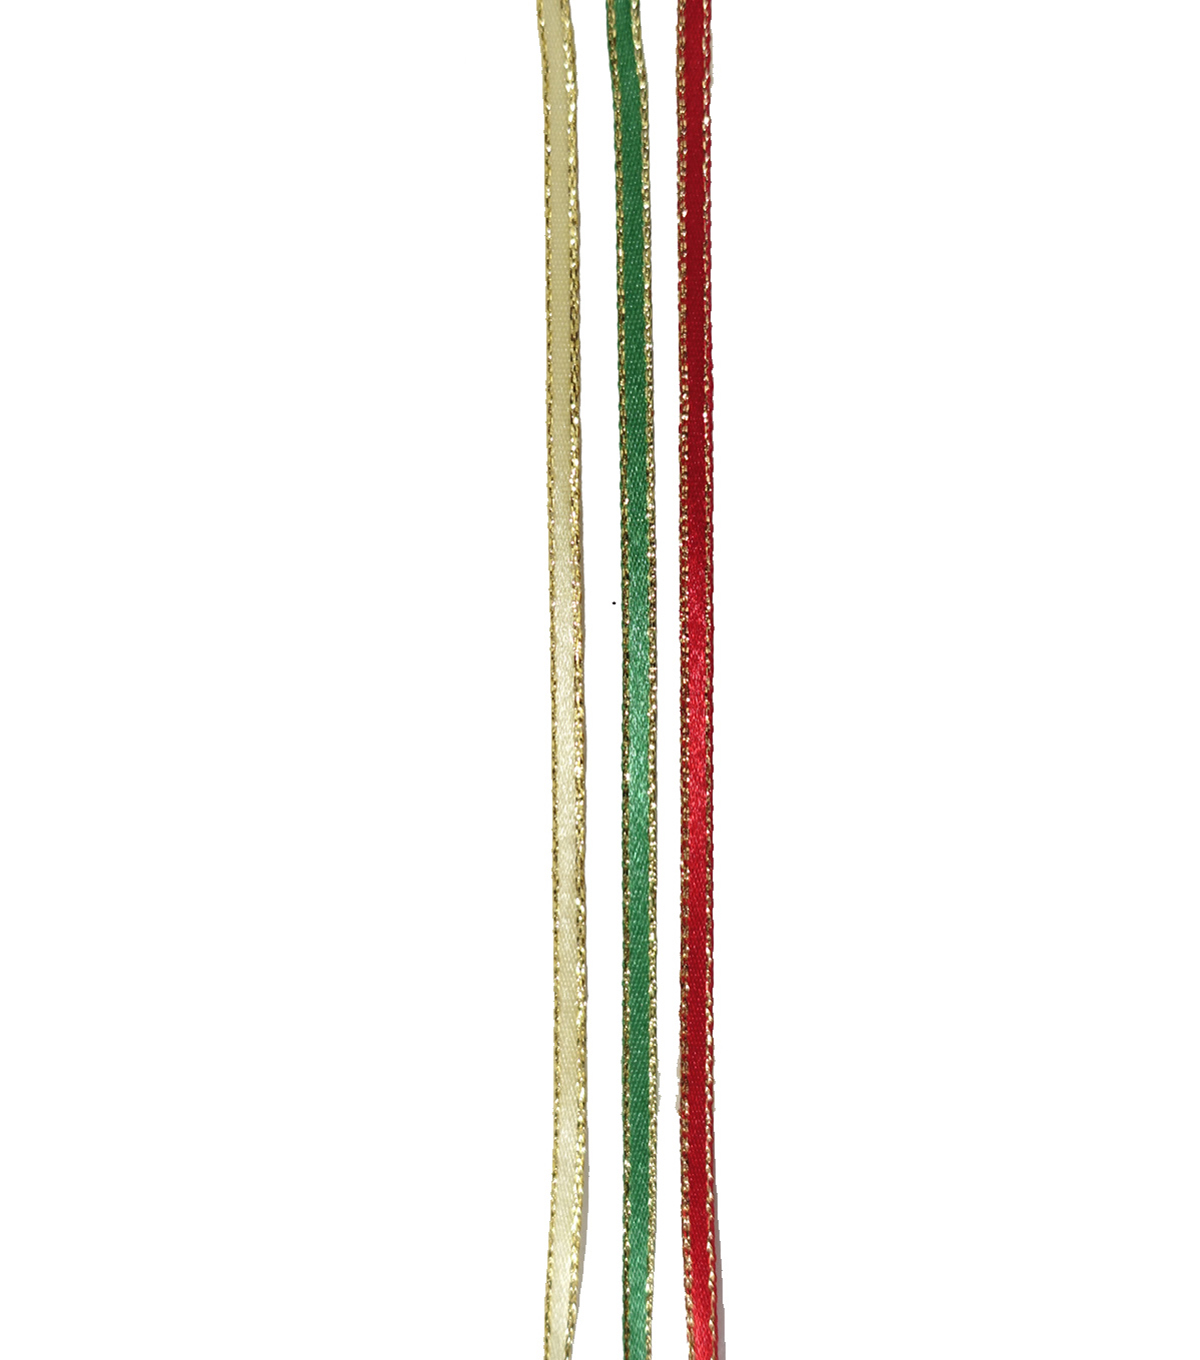 Maker\u0027s Holiday Satin Ribbon 1/8\u0027\u0027x54\u0027-Red, Green & Gold with Gold Edge